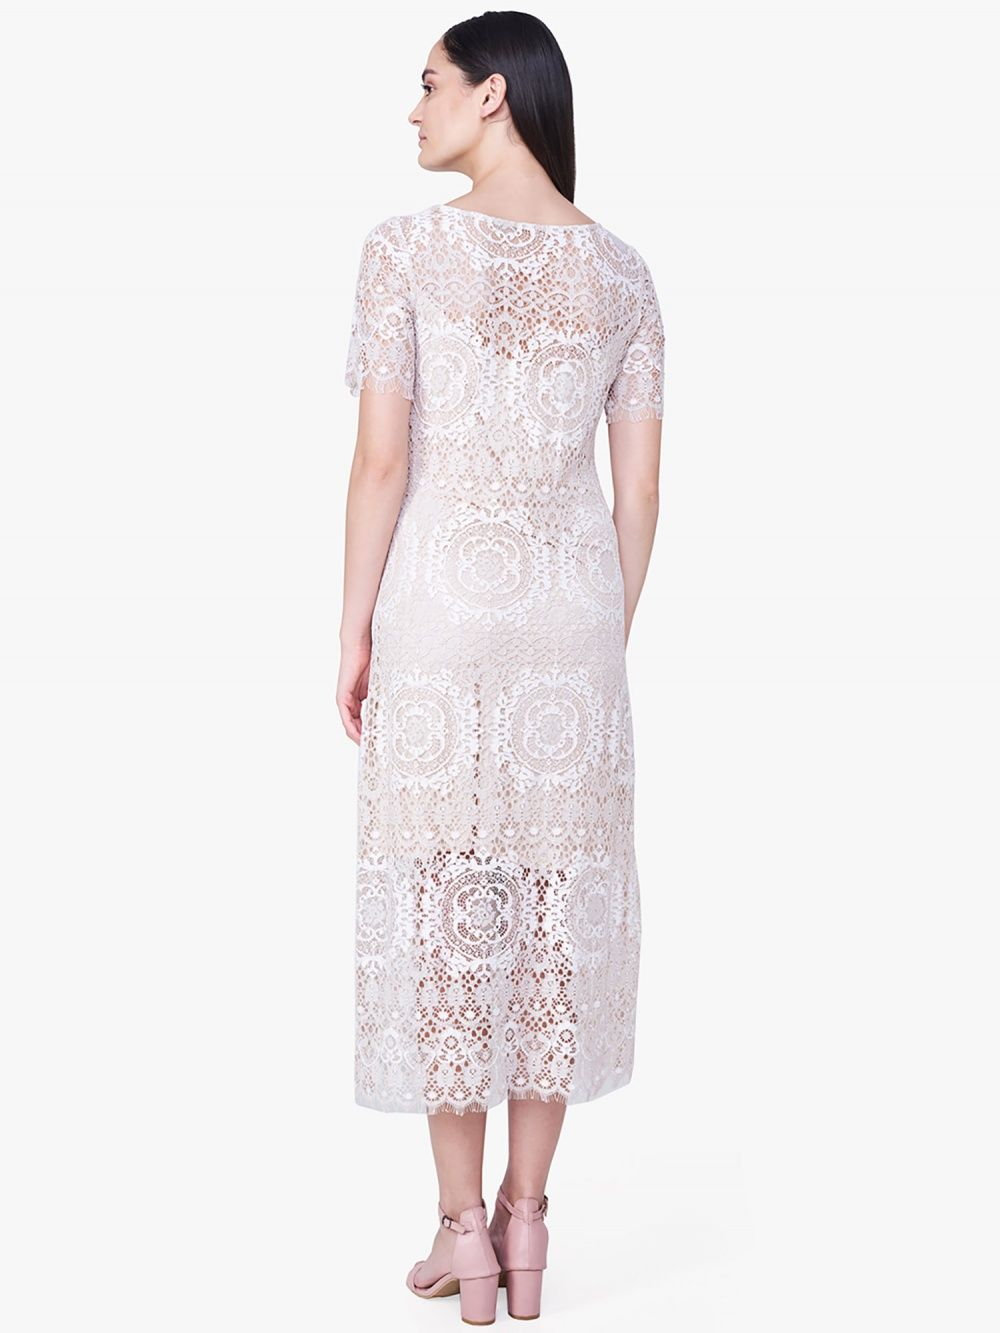 0399998723e44 AND Beige Lace Midi Dress